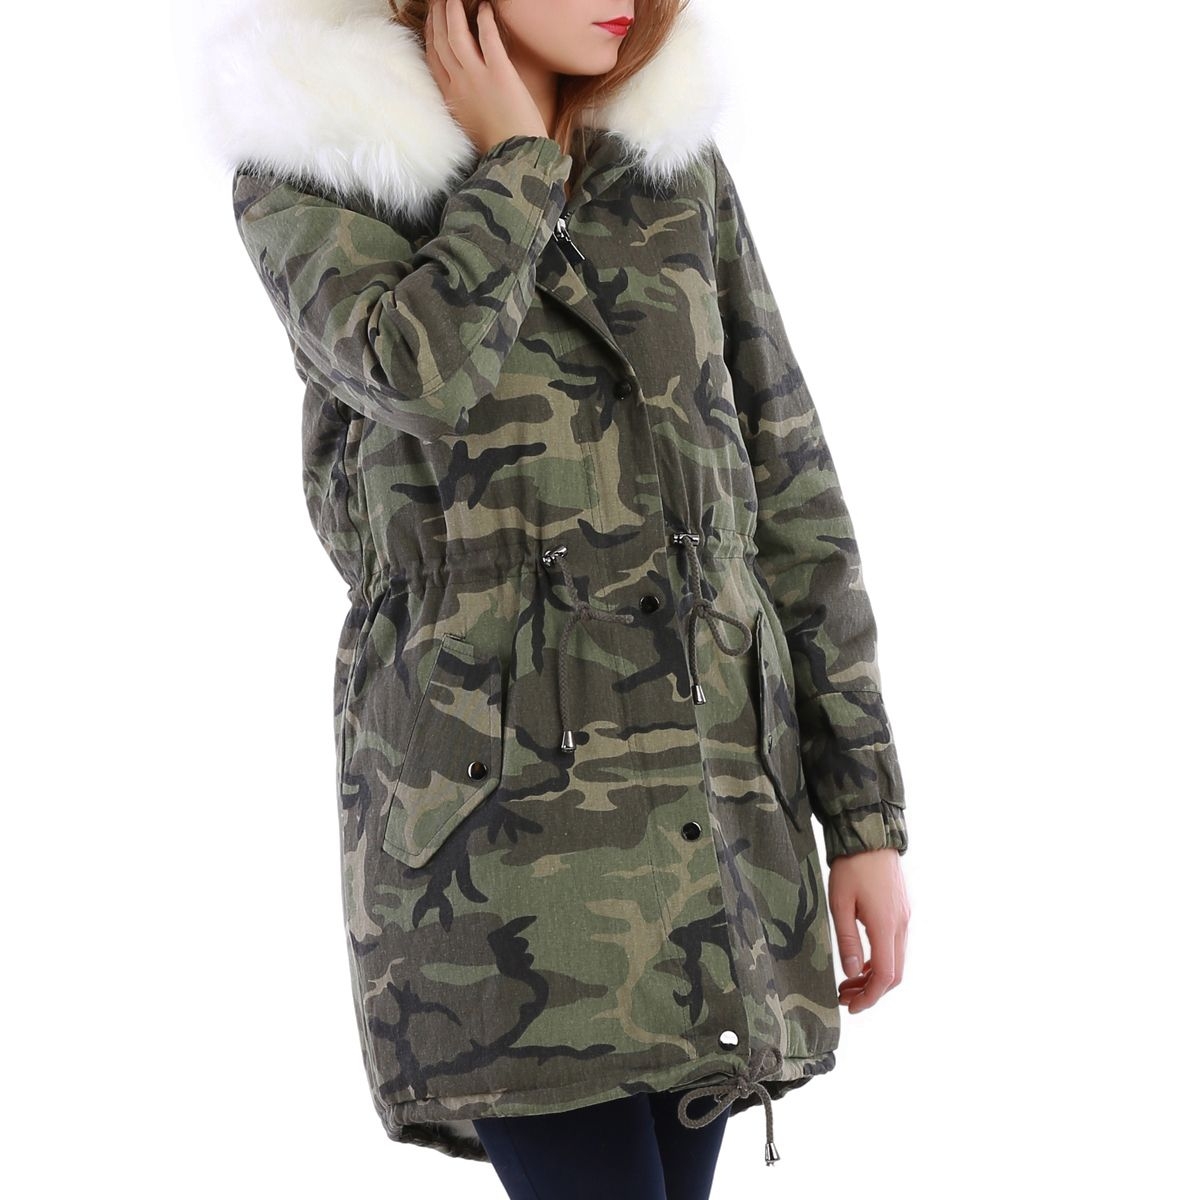 parka camouflage doublure fourrure blanche femme pas cher la modeuse. Black Bedroom Furniture Sets. Home Design Ideas